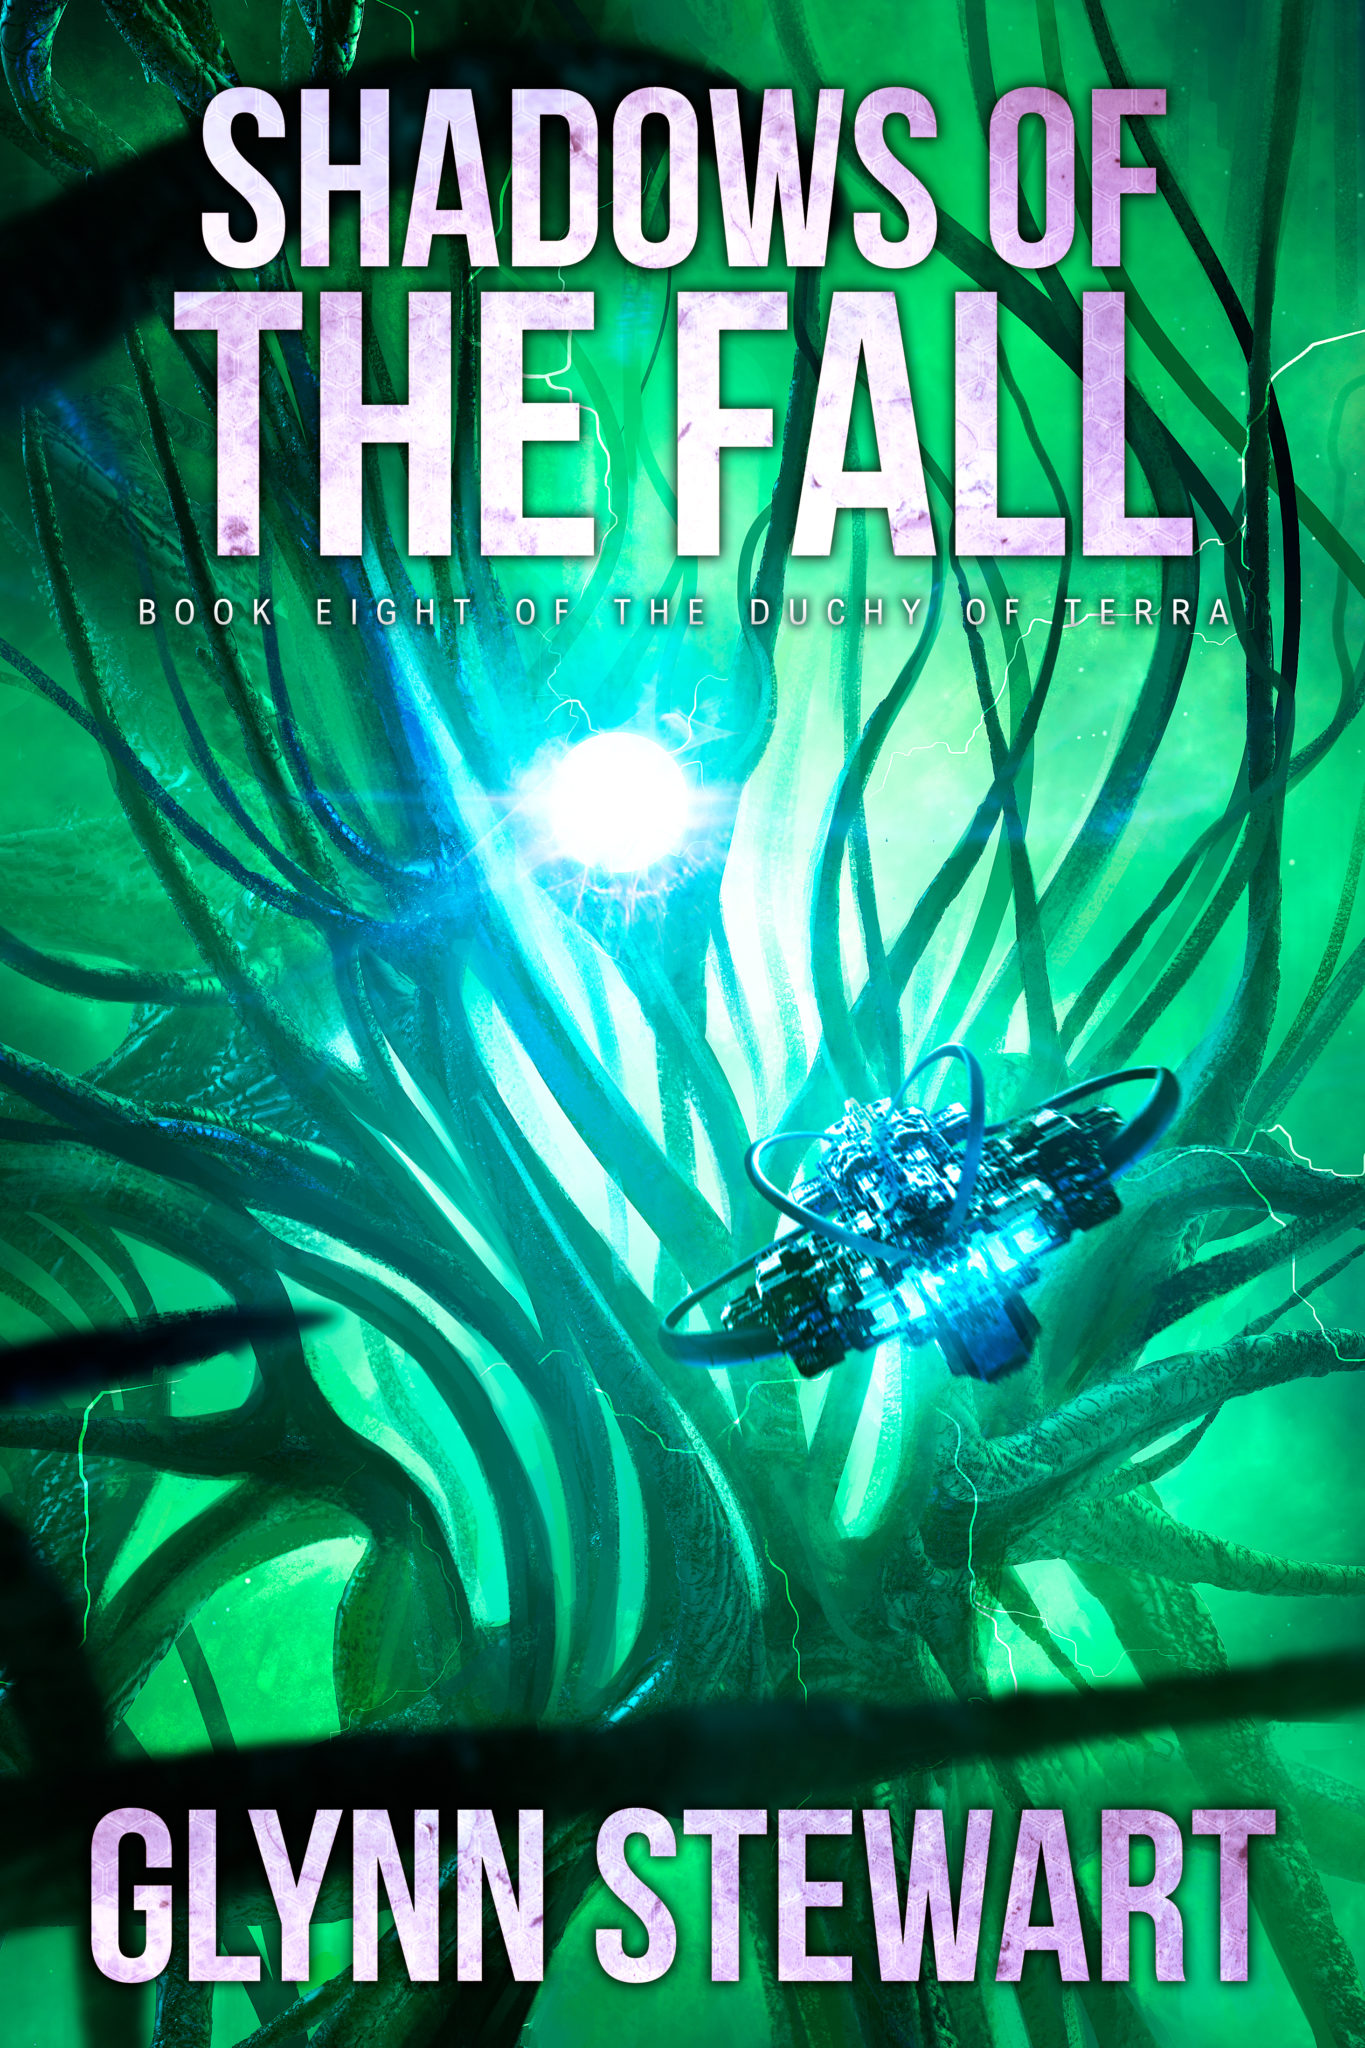 https://www.glynnstewart.com/wp-content/uploads/2020/10/DOT8-Shadows-of-the-Fall-ebook-large-scaled.jpg